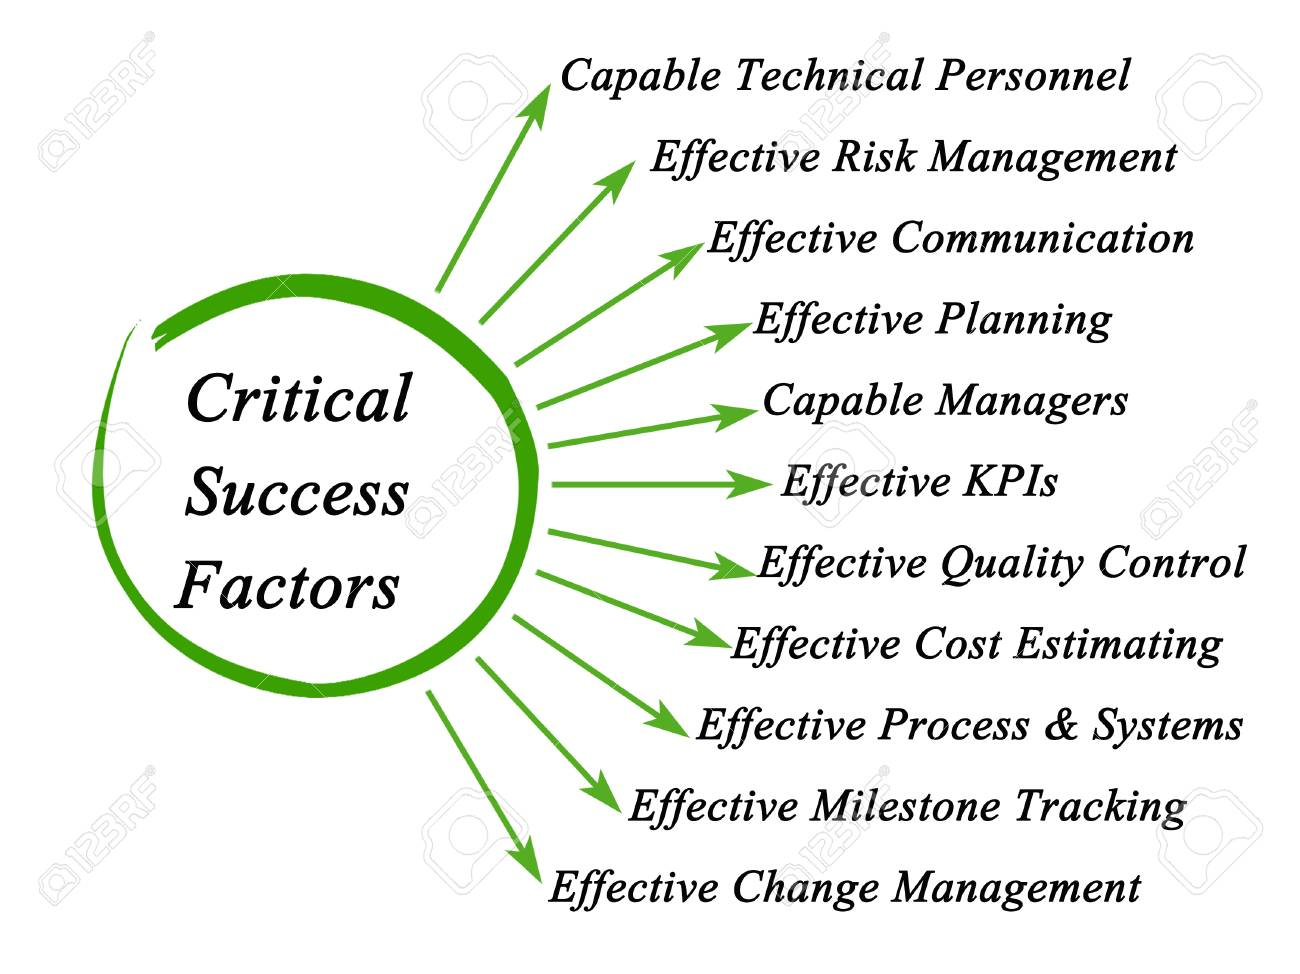 critical success factors stock photo picture and royalty free image